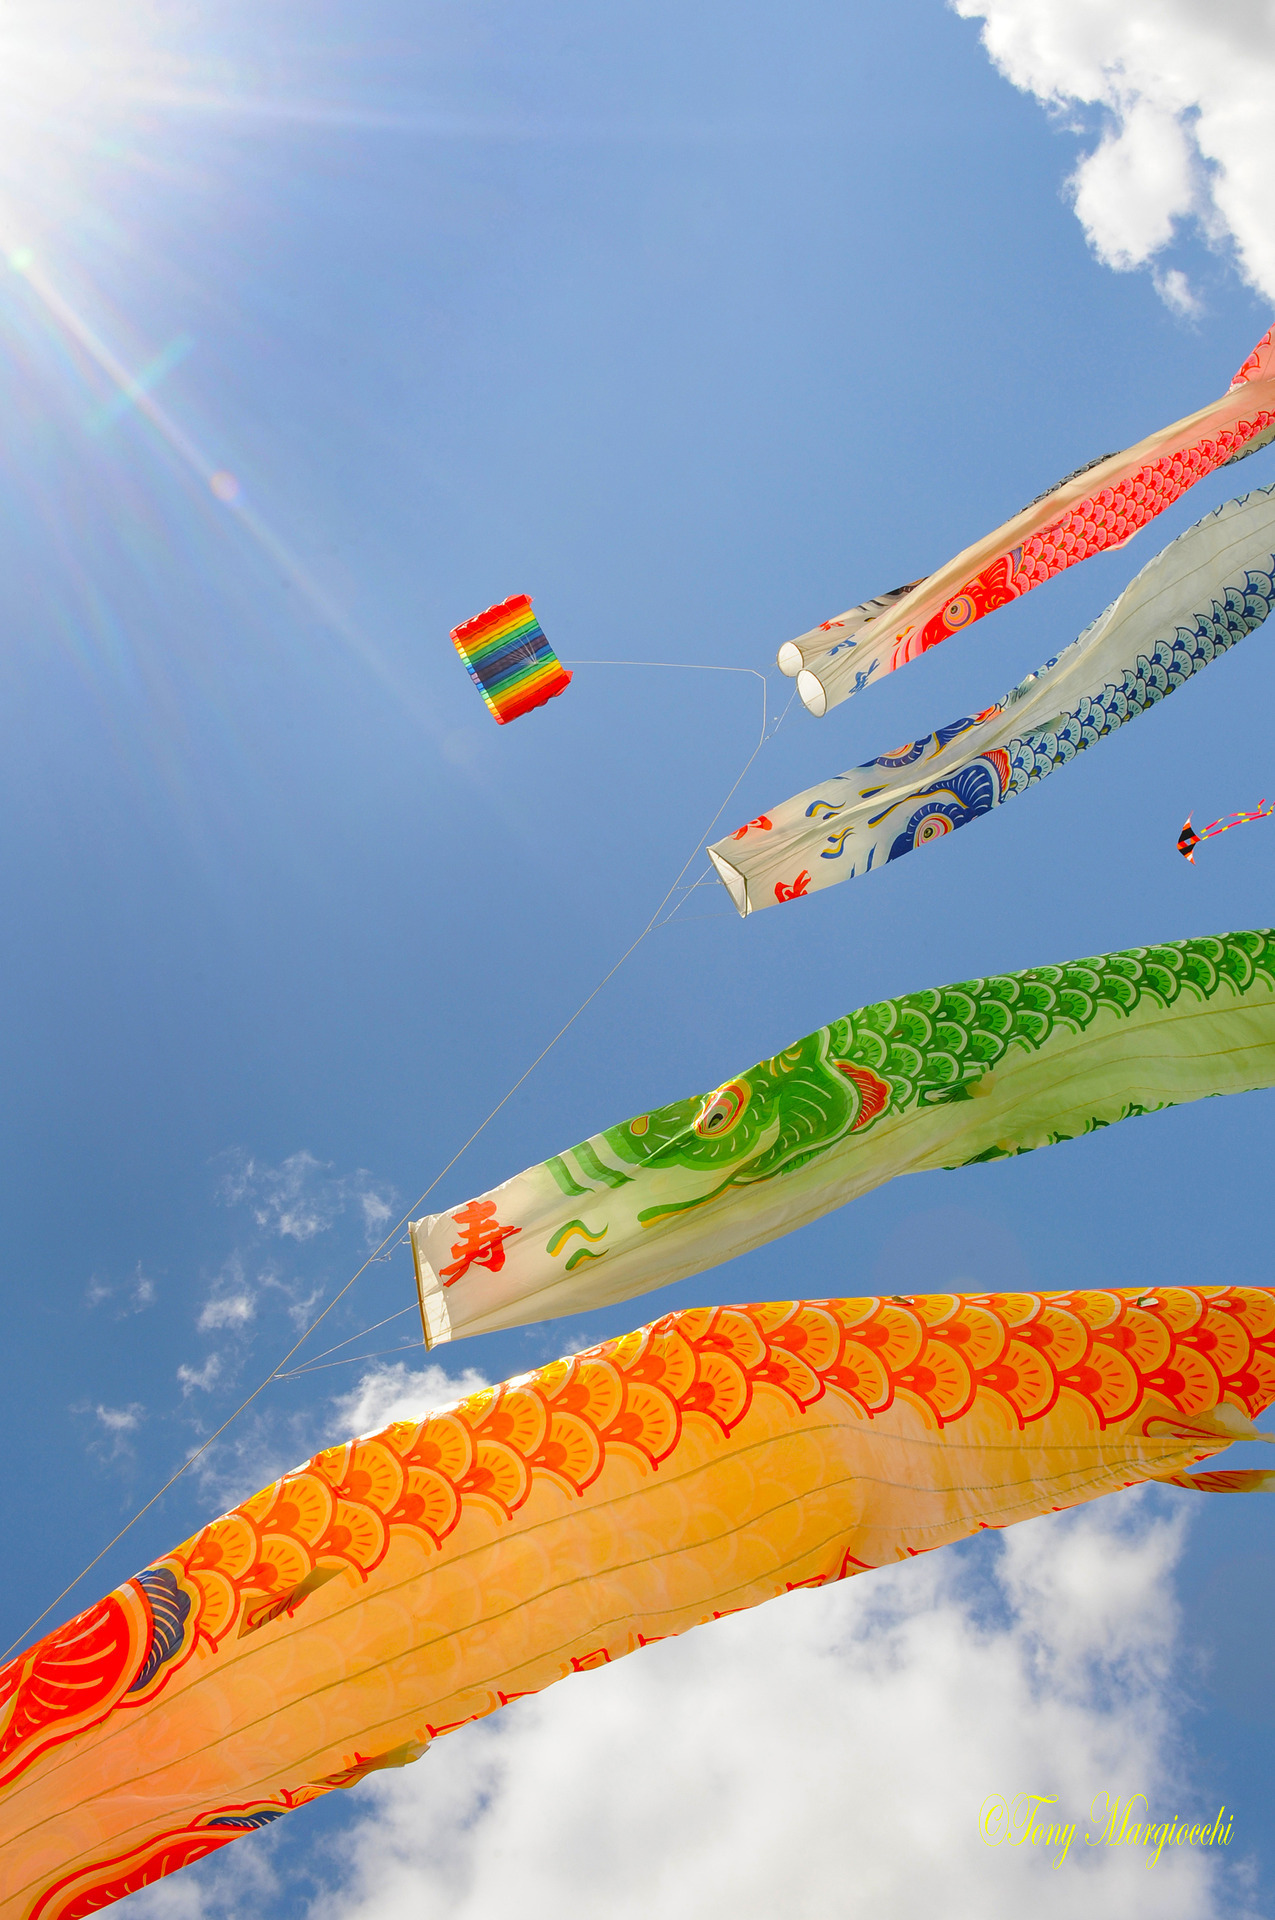 mtshowr21:  Kite Festival Dunstable Downs 2012 (via Tony Margiocchi (Snapperz))